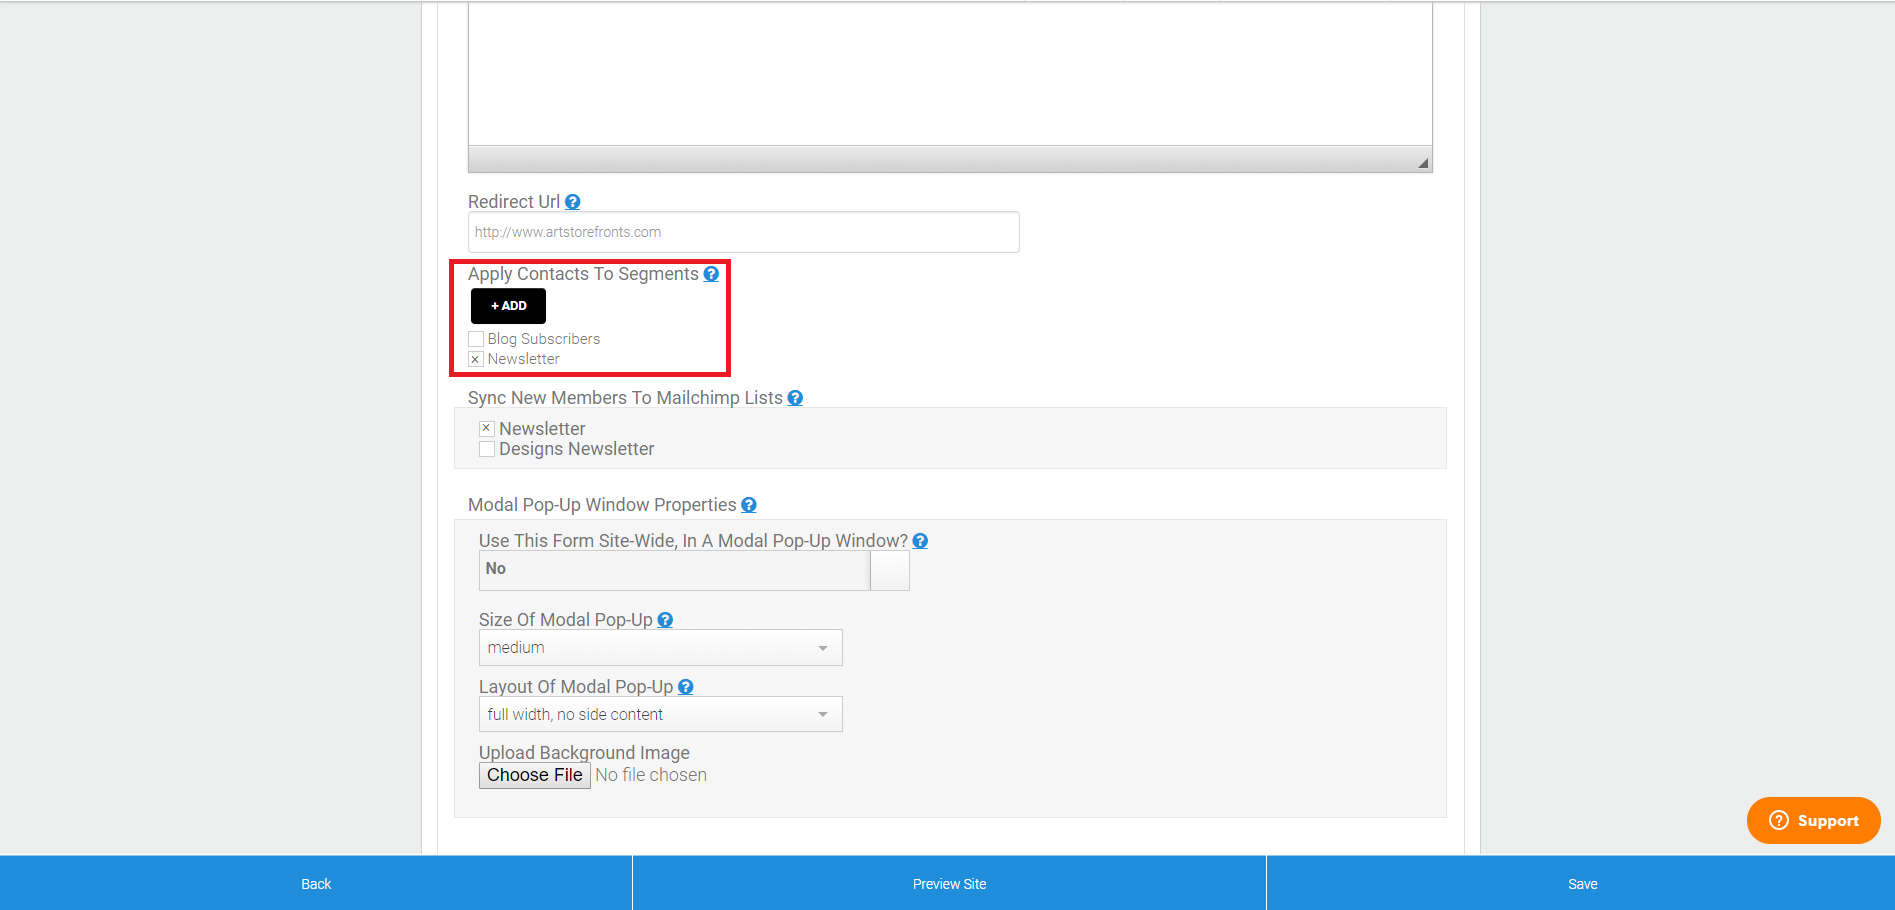 How To: Create an E-mail Signup Form for Trade Shows and